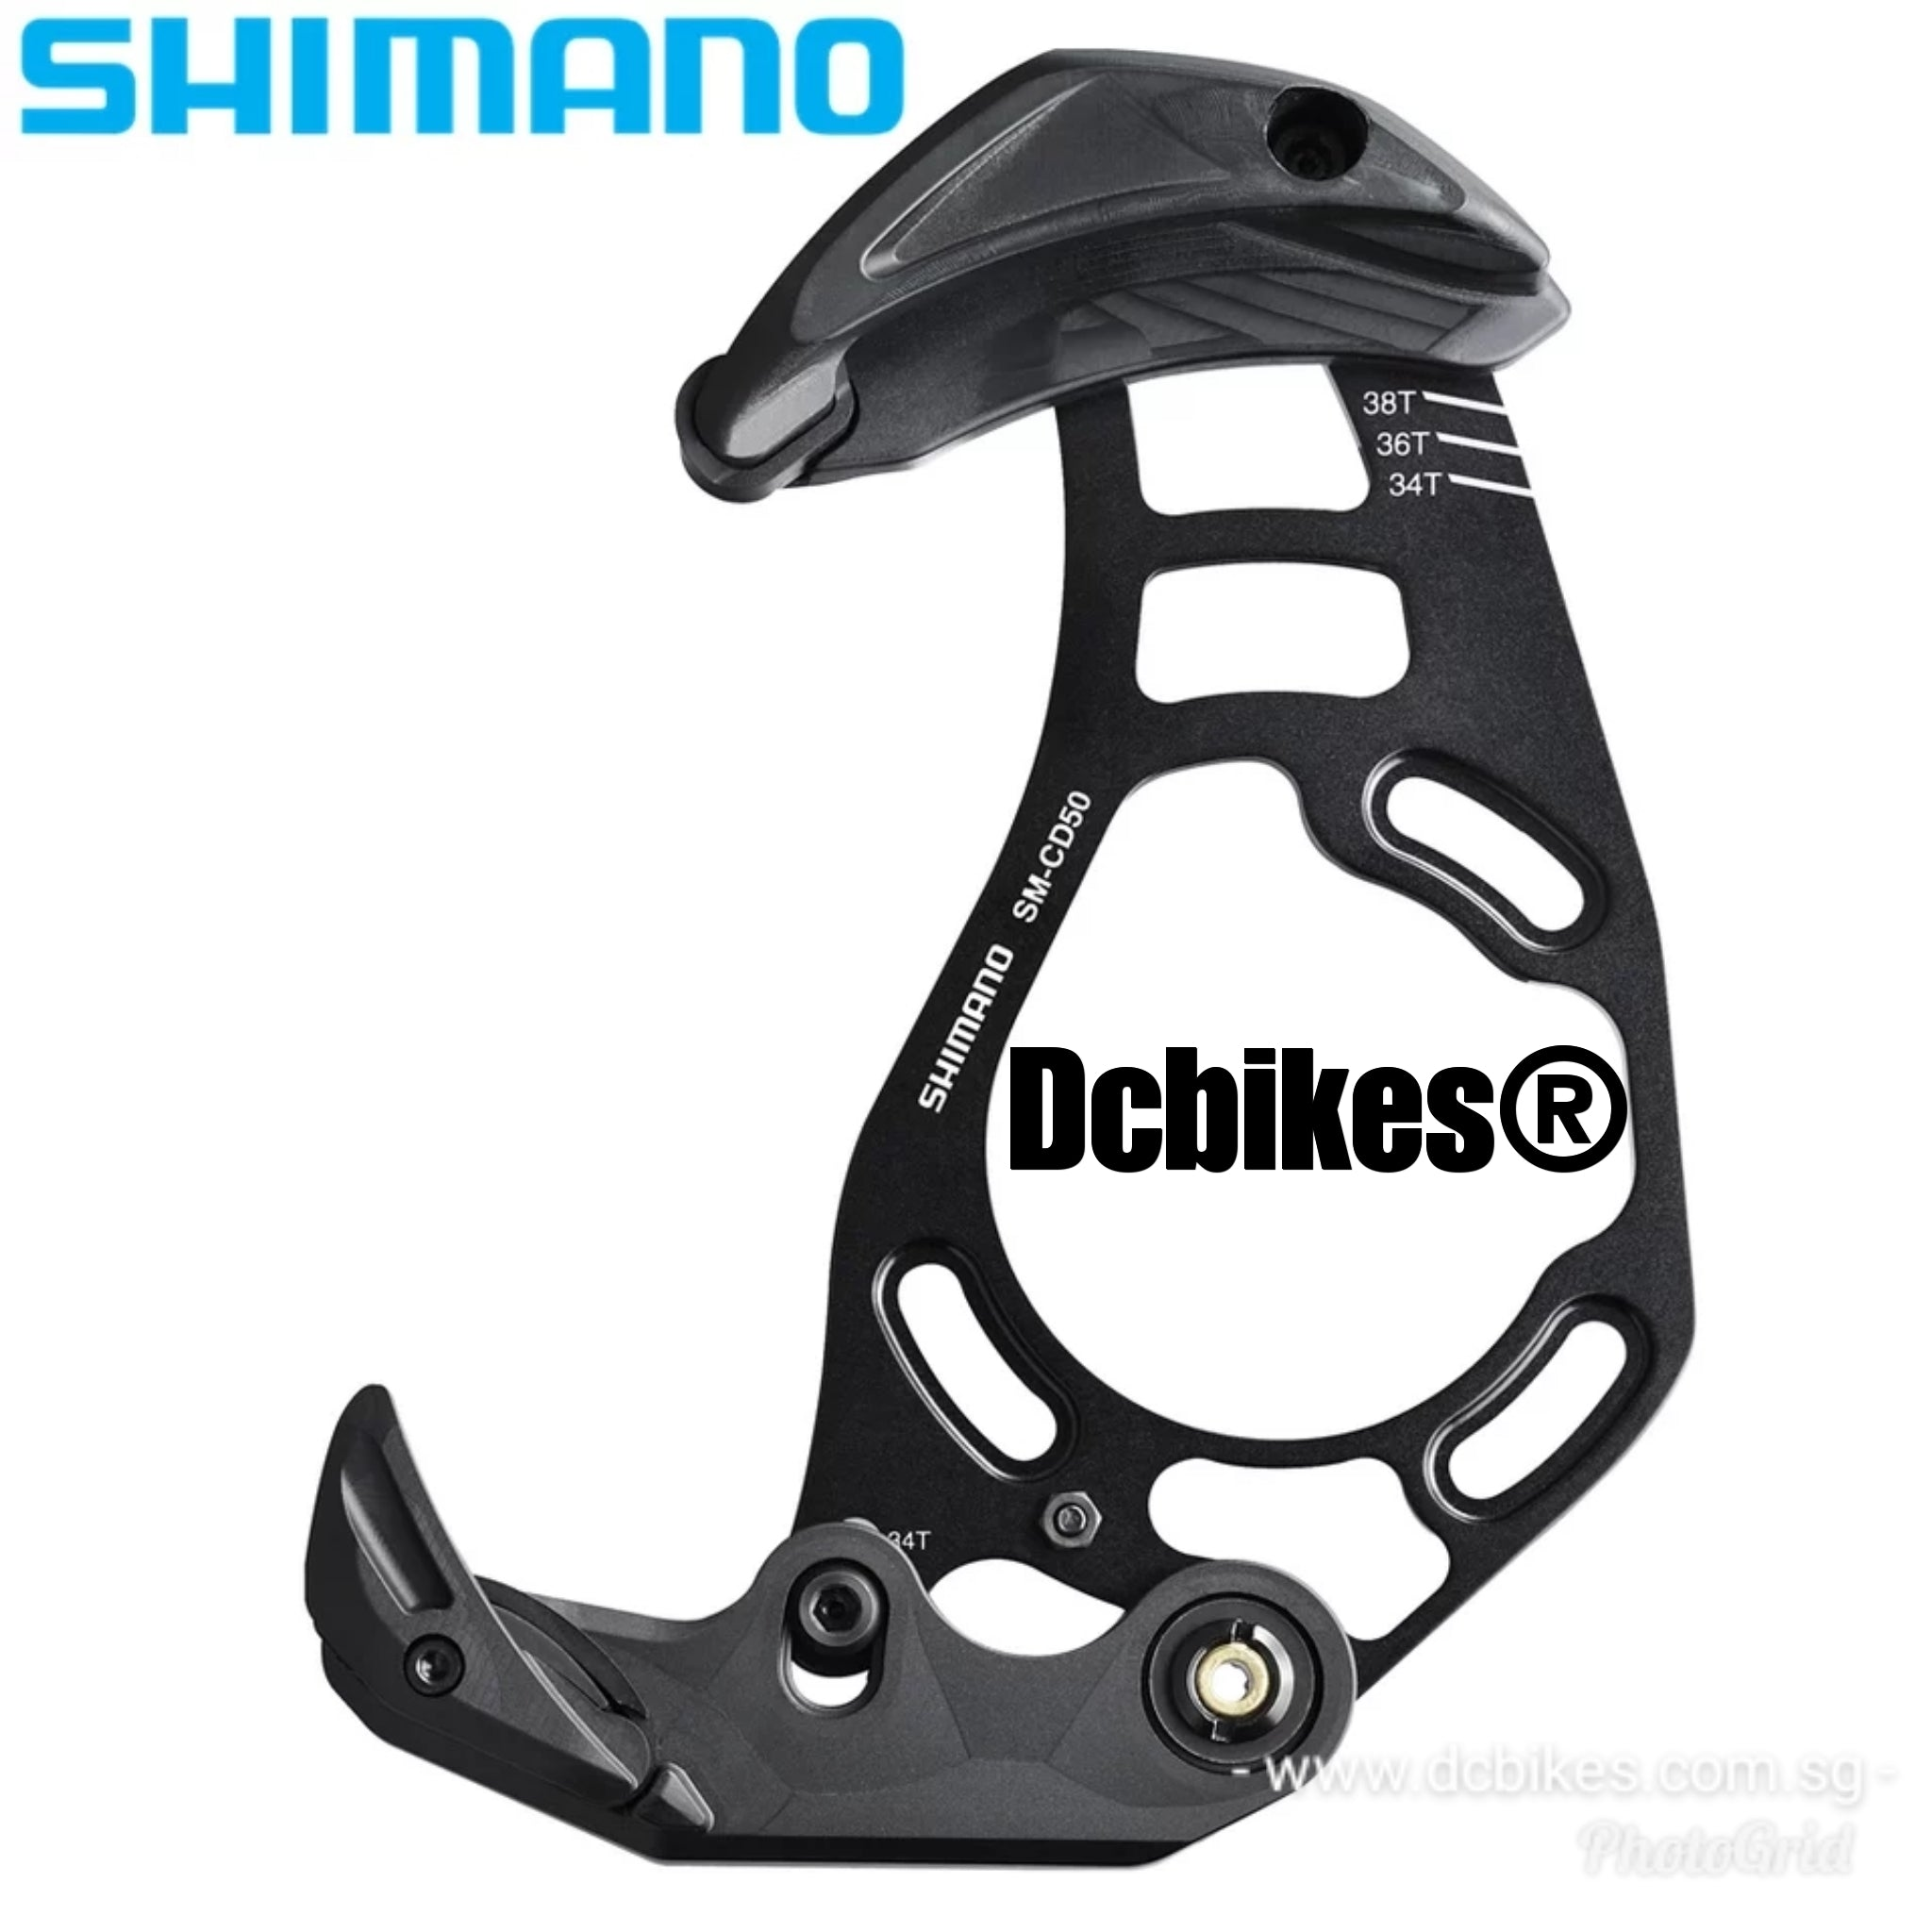 ISCG05 Shimano SM-CD50 MTB//Bike Saint Chain Guard And Guide Set 38T